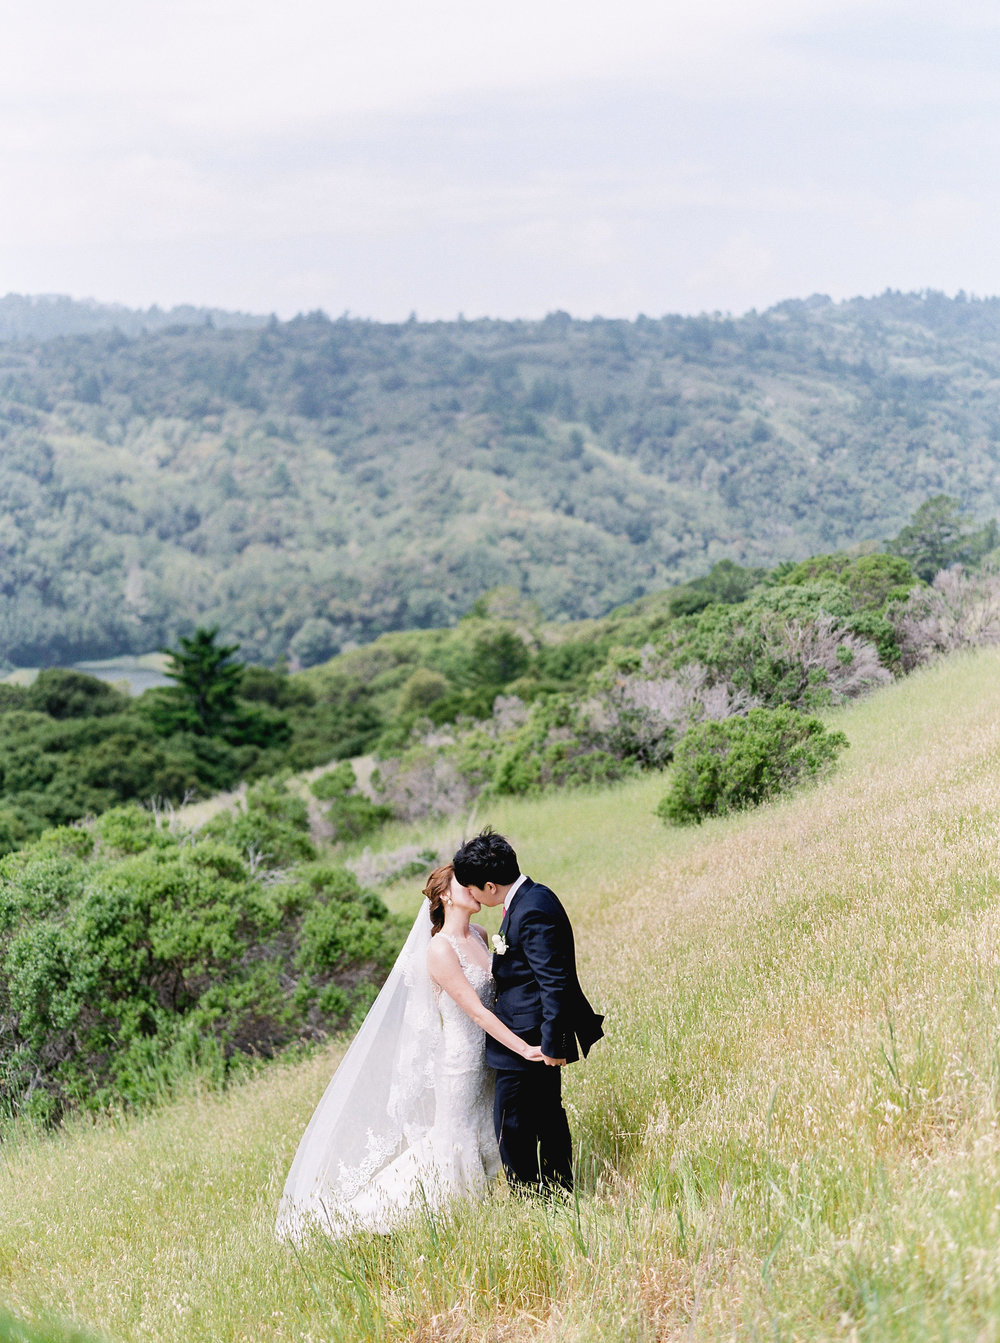 mountaintop-wedding-at-crystal-springs-burlingame-california-51.jpg